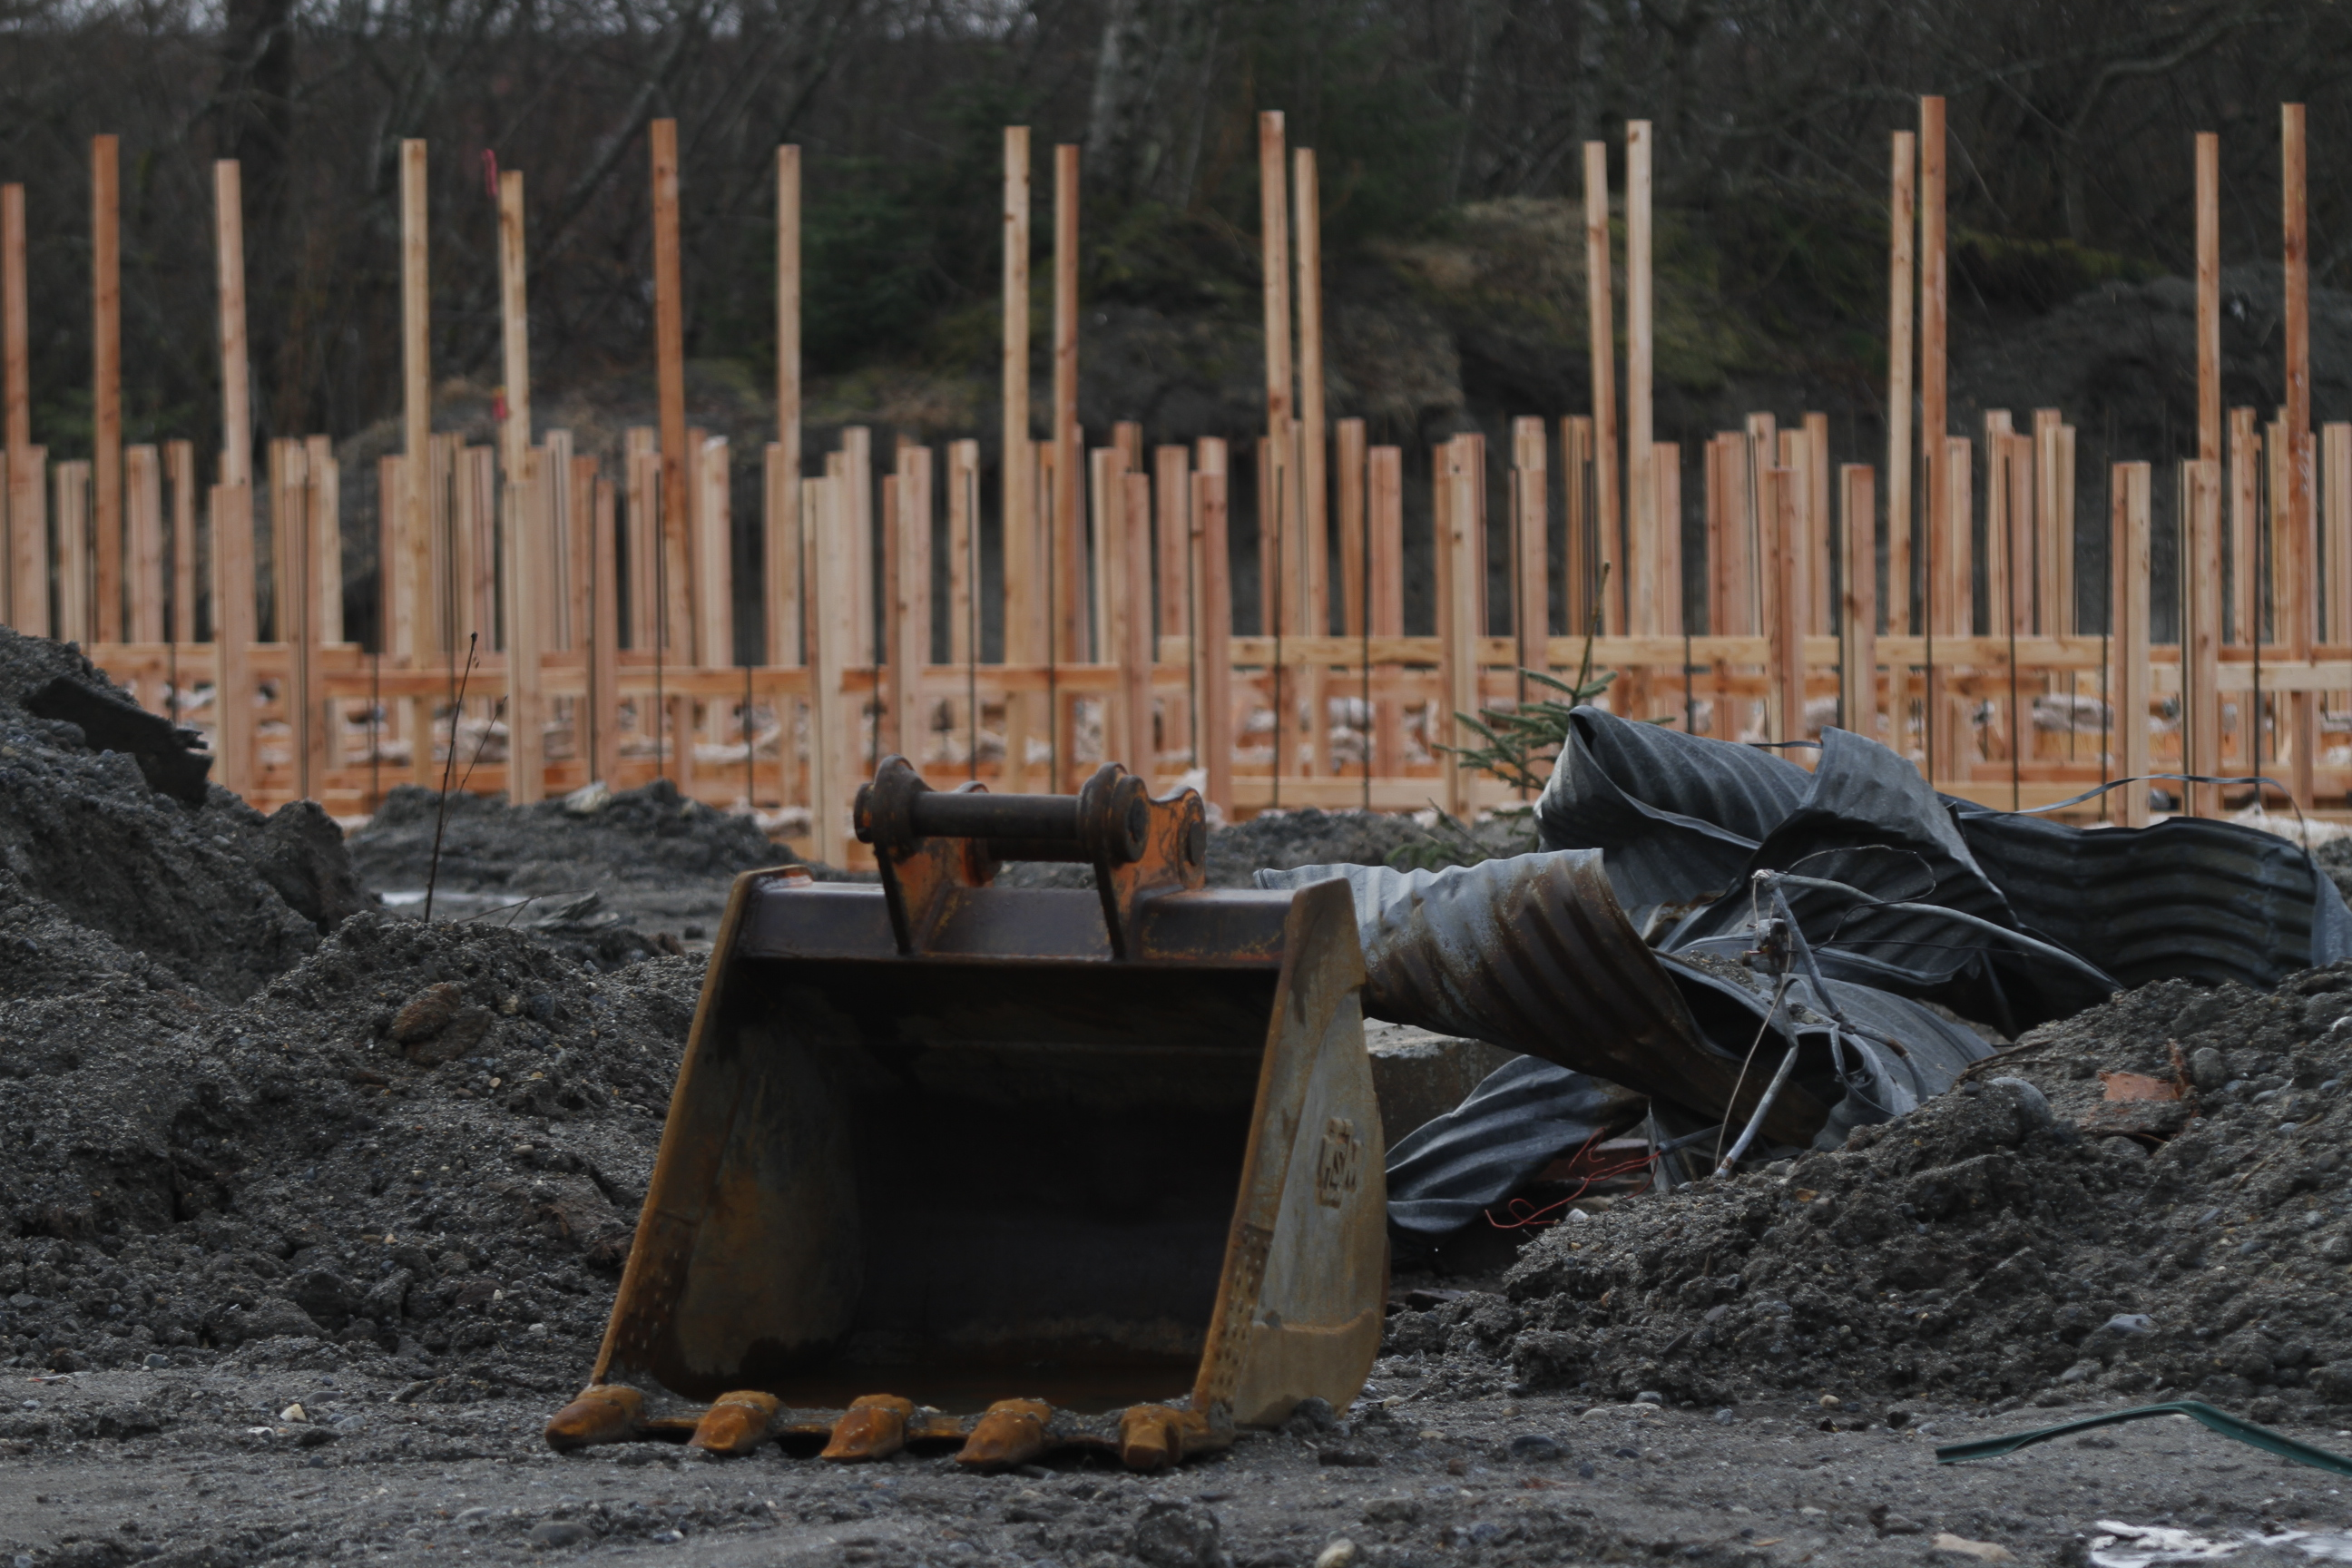 Construction for the indoor gun range has begun at 1720 Crest St. near the Juneau International Airport.